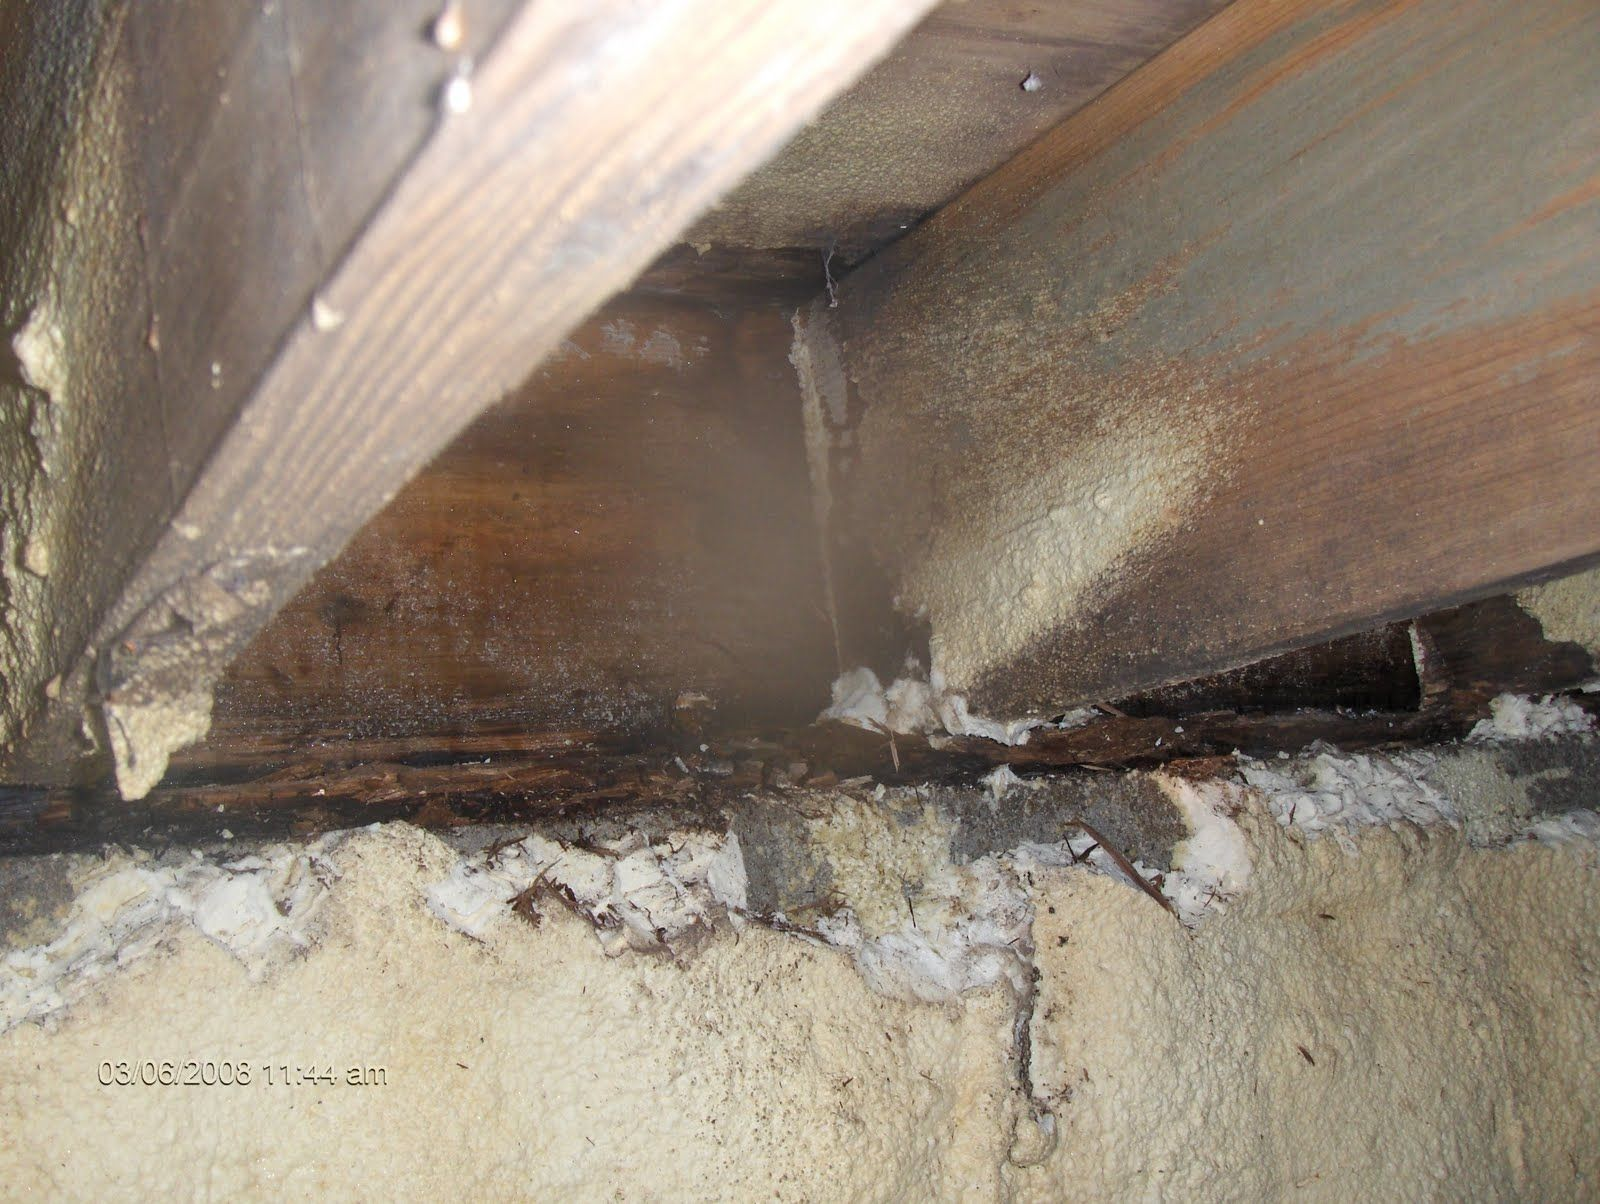 Spray Sealer For Basement Walls The Cracks In Your Basement Wall Will Not Normally Weaken The Structure Of Damp Basement Basement Walls Spray Foam Insulation